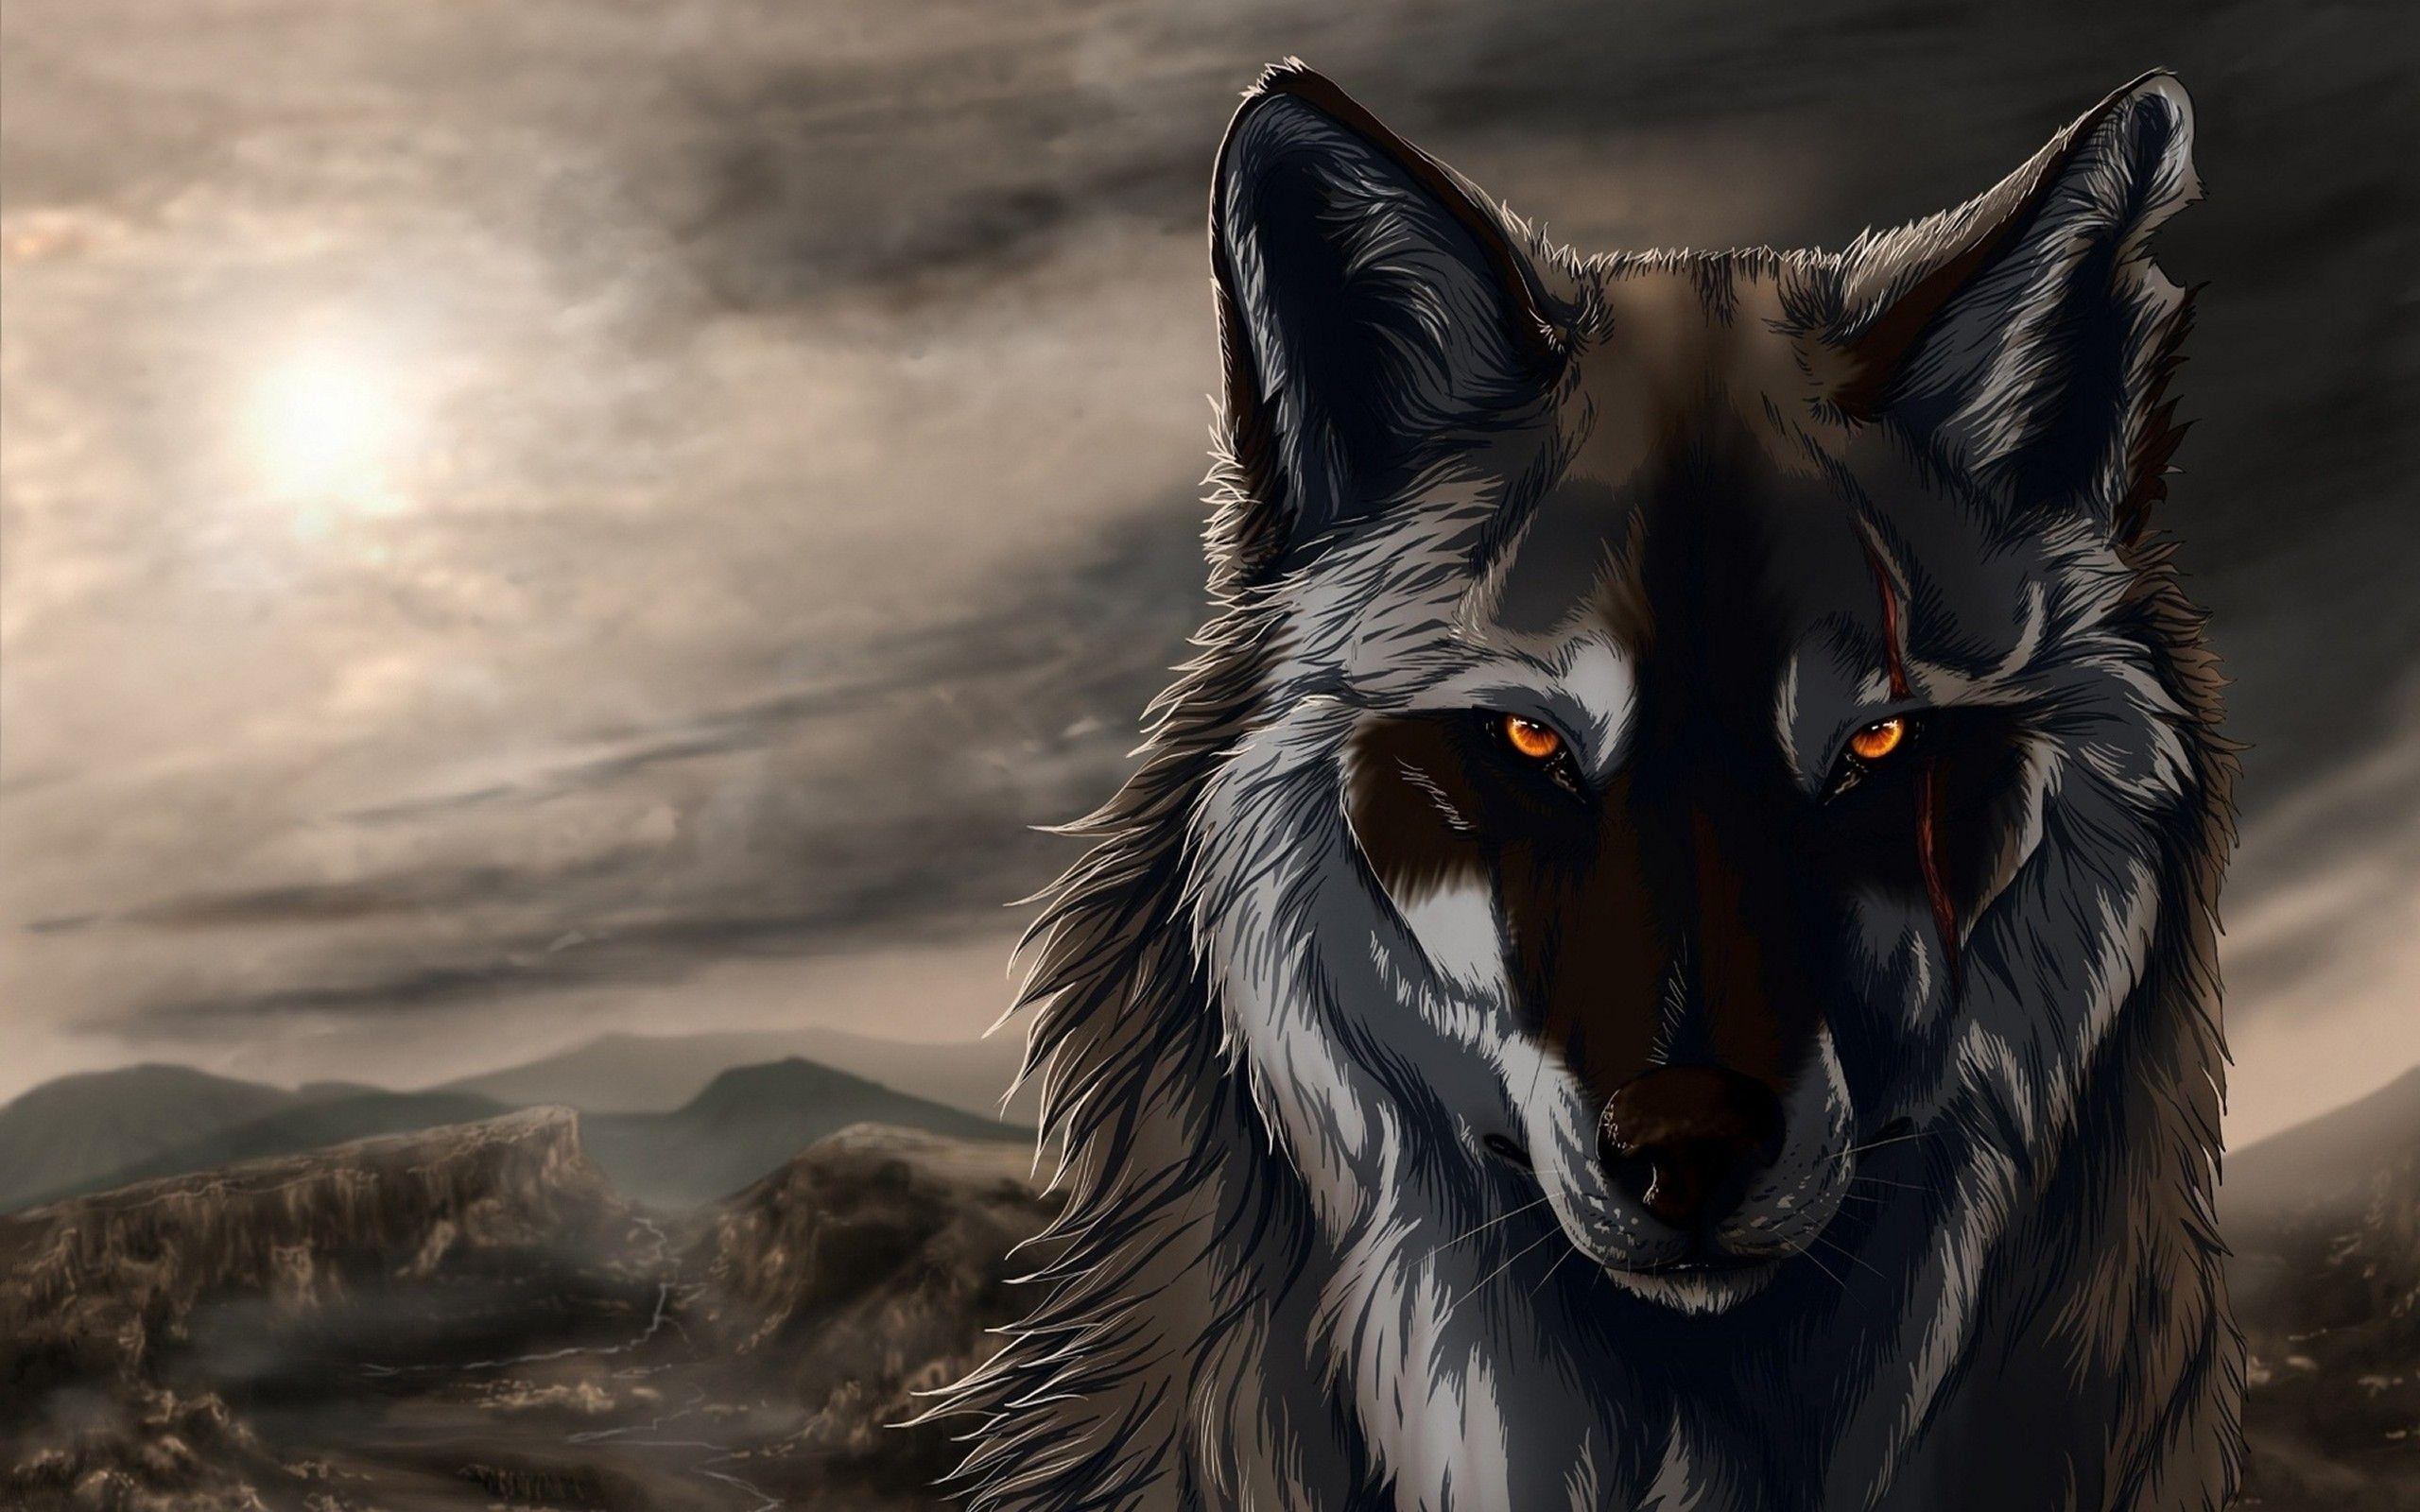 Good HQFX Wallpapers Collection Free Wolf Screensavers And